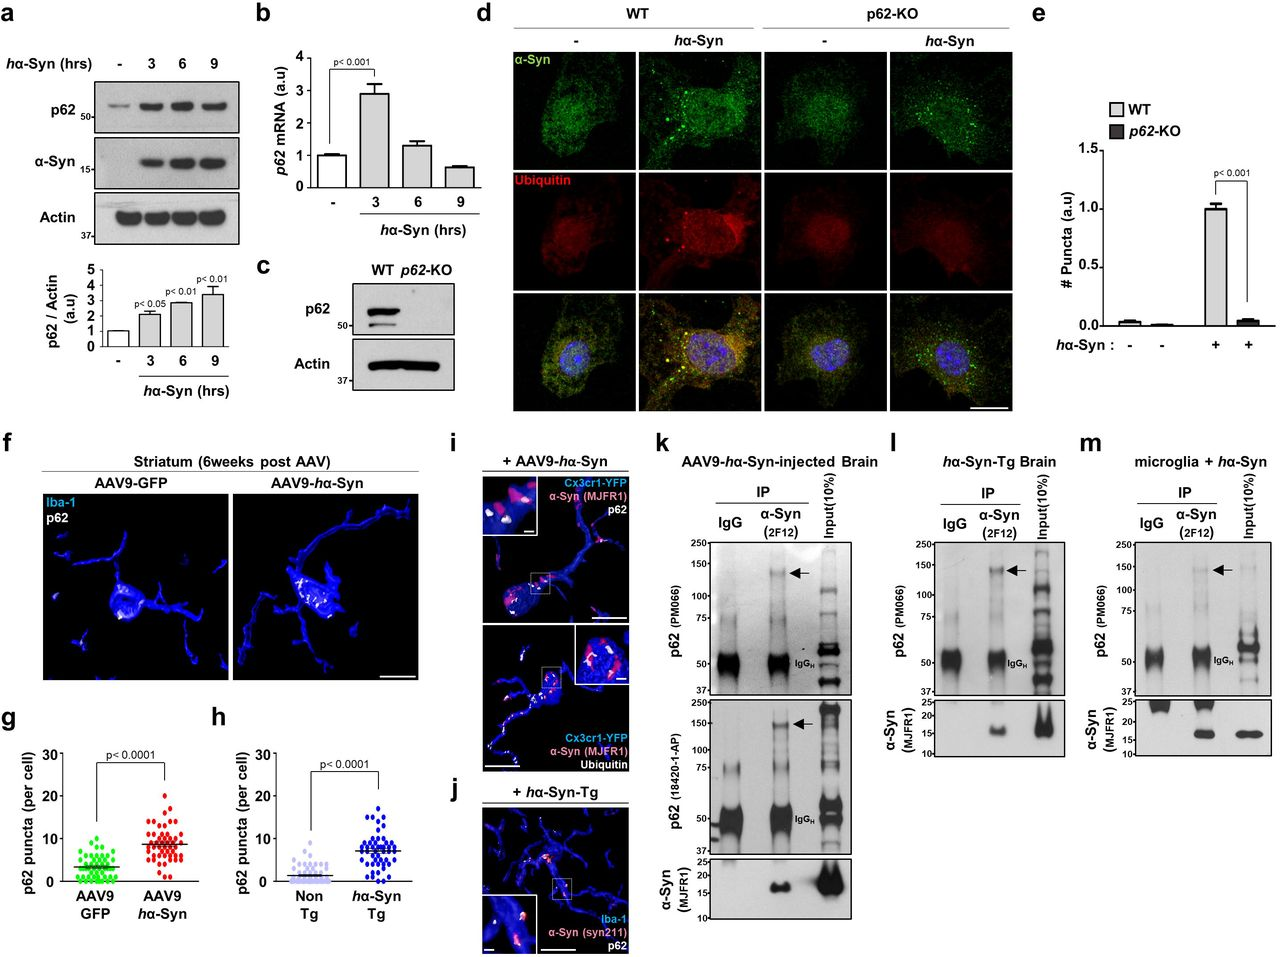 Transcriptional upregulation of autophagy receptor p62 mediates microglial sequestration and degradation of α-synuclein. (a) Microglia were treated with 250nM h α-Syn protein for the indicated time and assayed for W.B using antibodies against p62 and human α-synuclein. The levels of p62 protein were quantified in the lower panel. p values were calculated by One-way ANOVA with Newman– Keuls post hoc test. (b) After treatment of 250nM h α-Syn protein for the indicated time, the levels of p62 mRNA were examined by RT-qPCR. p62 mRNA was normalized to Actin mRNA. p values were calculated by One-way ANOVA with Newman–Keuls post hoc test. (c) The absence of p62 protein was confirmed in microglia obtained from p62 -KO mice compared to WT mice by W.B. (d, e) WT and p62 -KO microglia were treated with 250nM h α-Syn protein for 6 hours and stained with antibodies against human α-synuclein and ubiquitin ( d ). The number of h α-Syn/ubiquitin-positive puncta was quantified ( e ). p values were calculated by Two-way ANOVA with Bonferroni Post Hoc Test. Scale bar, 10 µm. (f-h) The number of p62 puncta was quantified in microglia at striatum of brains either from AAV- h α-Syn-injected mice (n=3, f, g ) or from h α-Syn-Tg mice (n=5, h ) compared to AAV-GFP-injected mice (n=3) and non-Tg mice (n=3), respectively. p values were calculated by Mann–Whitney U test. Scale bar, 10 µm. (i) At 6-weeks post-AAV- h α-Syn administration into Cx3cr1 CreER-IRES-Eyfp mice, brain slices were stained with antibodies against GFP/YFP, human α-synuclein, p62 (left panel), and ubiquitin (right panel). Scale bar, 10 µm; 1µm in the magnified box. (j) Brain sections from 10-months-old h α-syn-Tg mice were fixed and stained using antibodies against human α-synuclein, Iba-1, and p62. Scale bar, 10 µm; 1µm in the magnified box. (k, l, m) Human α-synuclein were immunoprecipitated from AAV - h α-Syn-injected brain ( k ), h α-Syn-Tg brain ( l ), and cultured microglia treated with 250nM h α-Syn protein for 6 hours ( m ). Arrows indicate the high-molecular-weight of p62. Data are representative of at least three independent experiments. All values are reported as mean ± SEM.